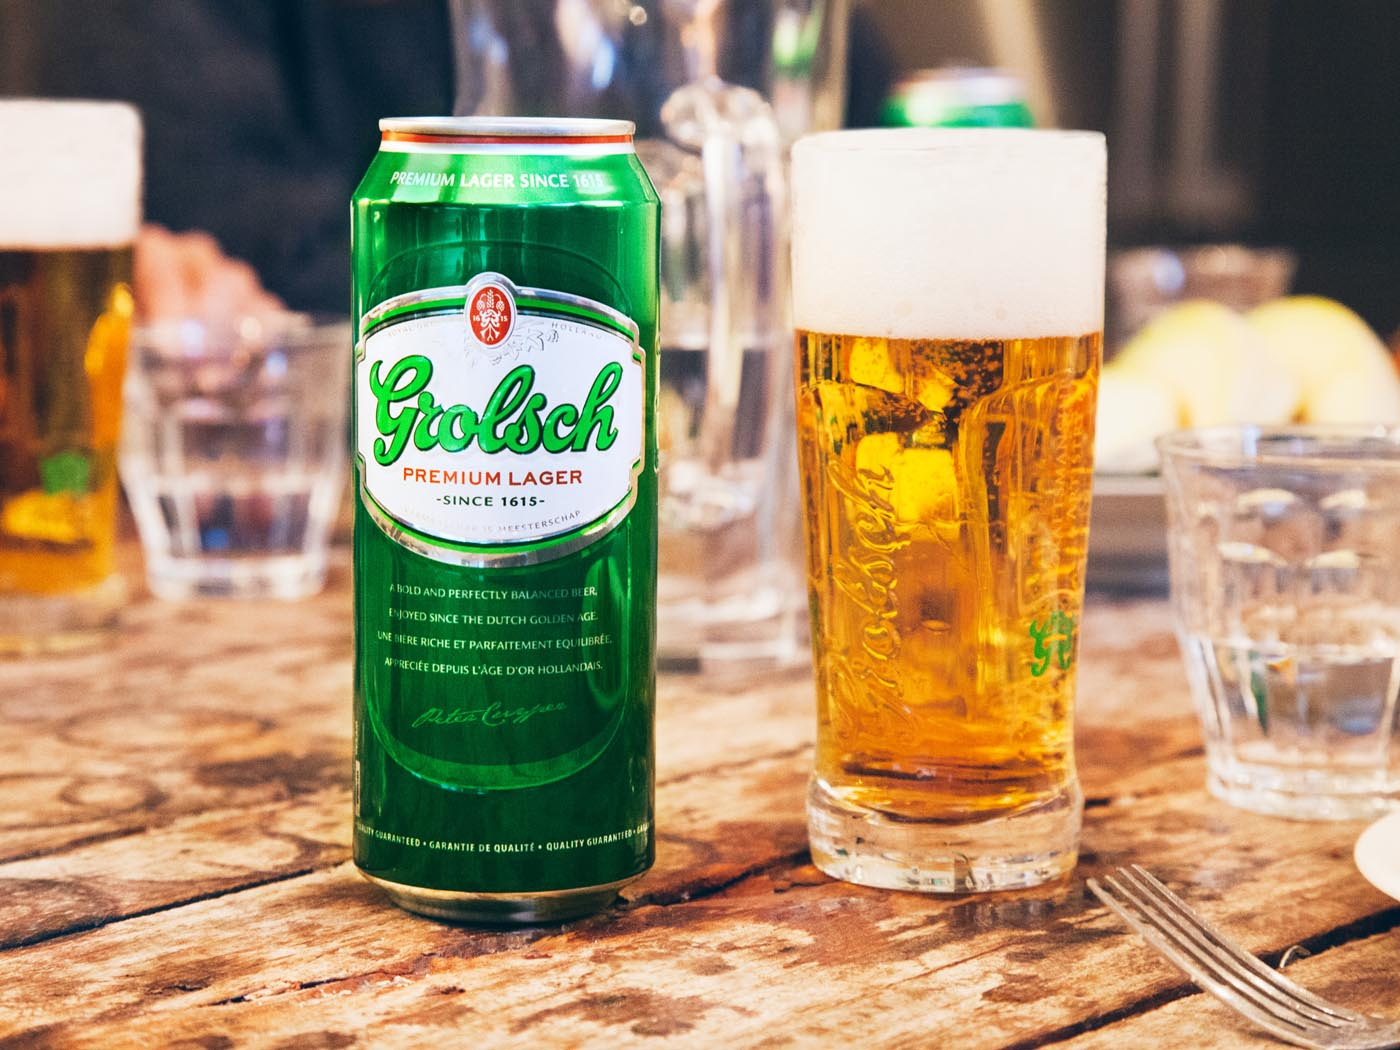 brazil s beer market analysis grolsch Brazilians sober up beer giant drowns in sorrow the belgian-based company said beer sales dropped nearly 9% in brazil in the last quarter, which slammed the unemployment is up and wages are down the international monetary fund expects brazil's sabmiller was forced to sell off its stake in a handful of big beer brands, including peroni and grolsch, to get regulatory approval for the deal.